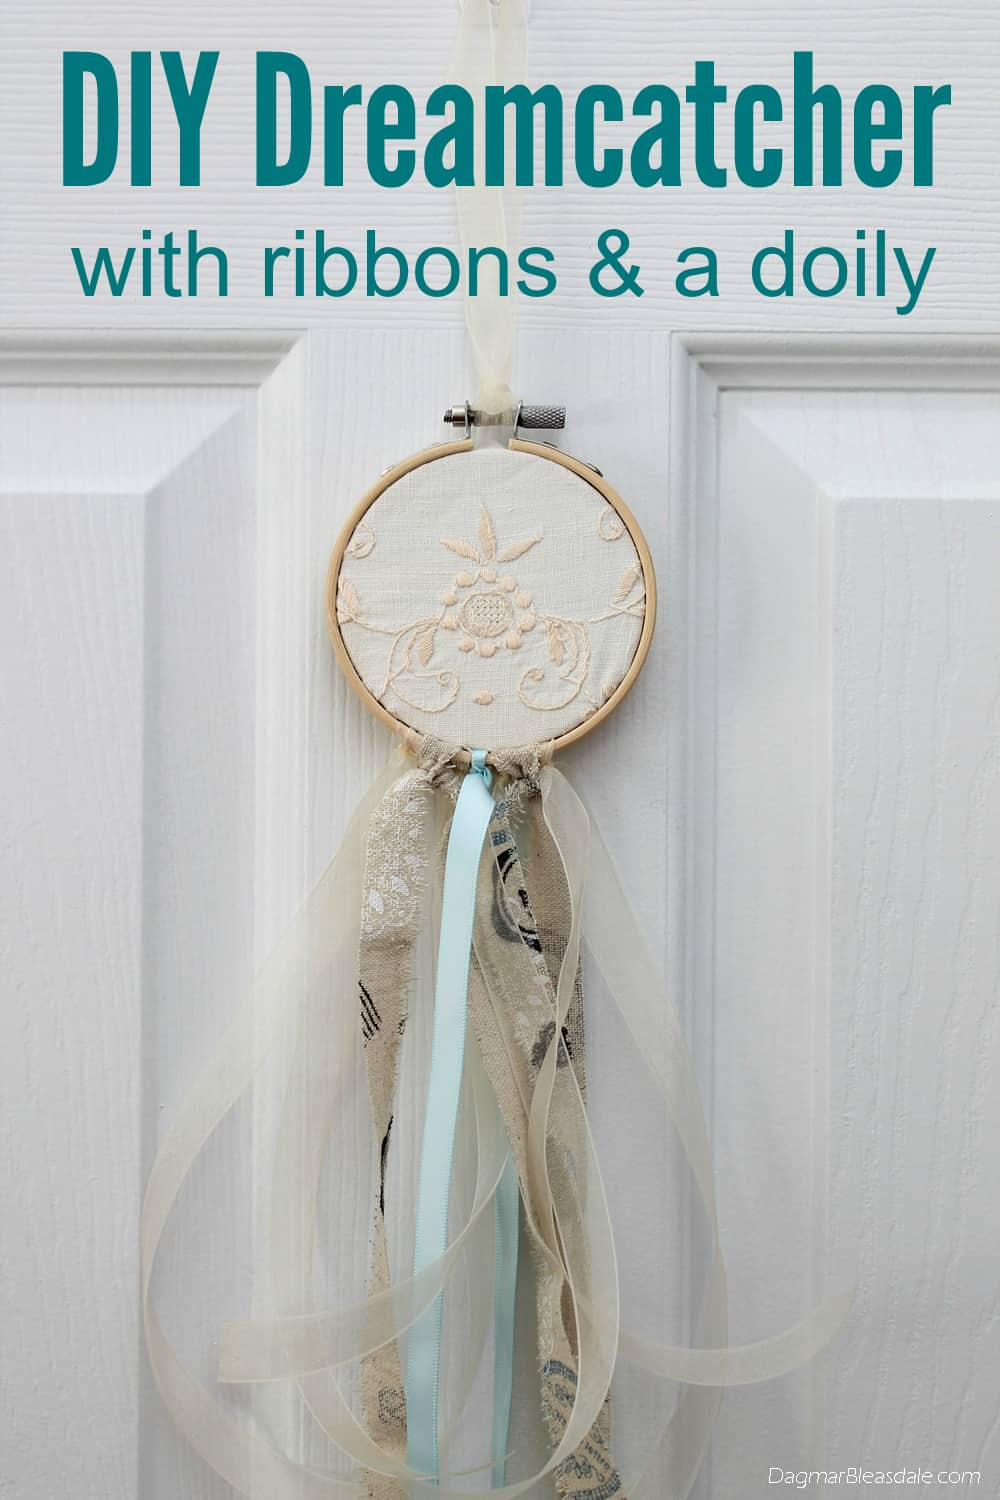 DIY dreamcatcher with ribbon and doily, DagmarBleasdale.com